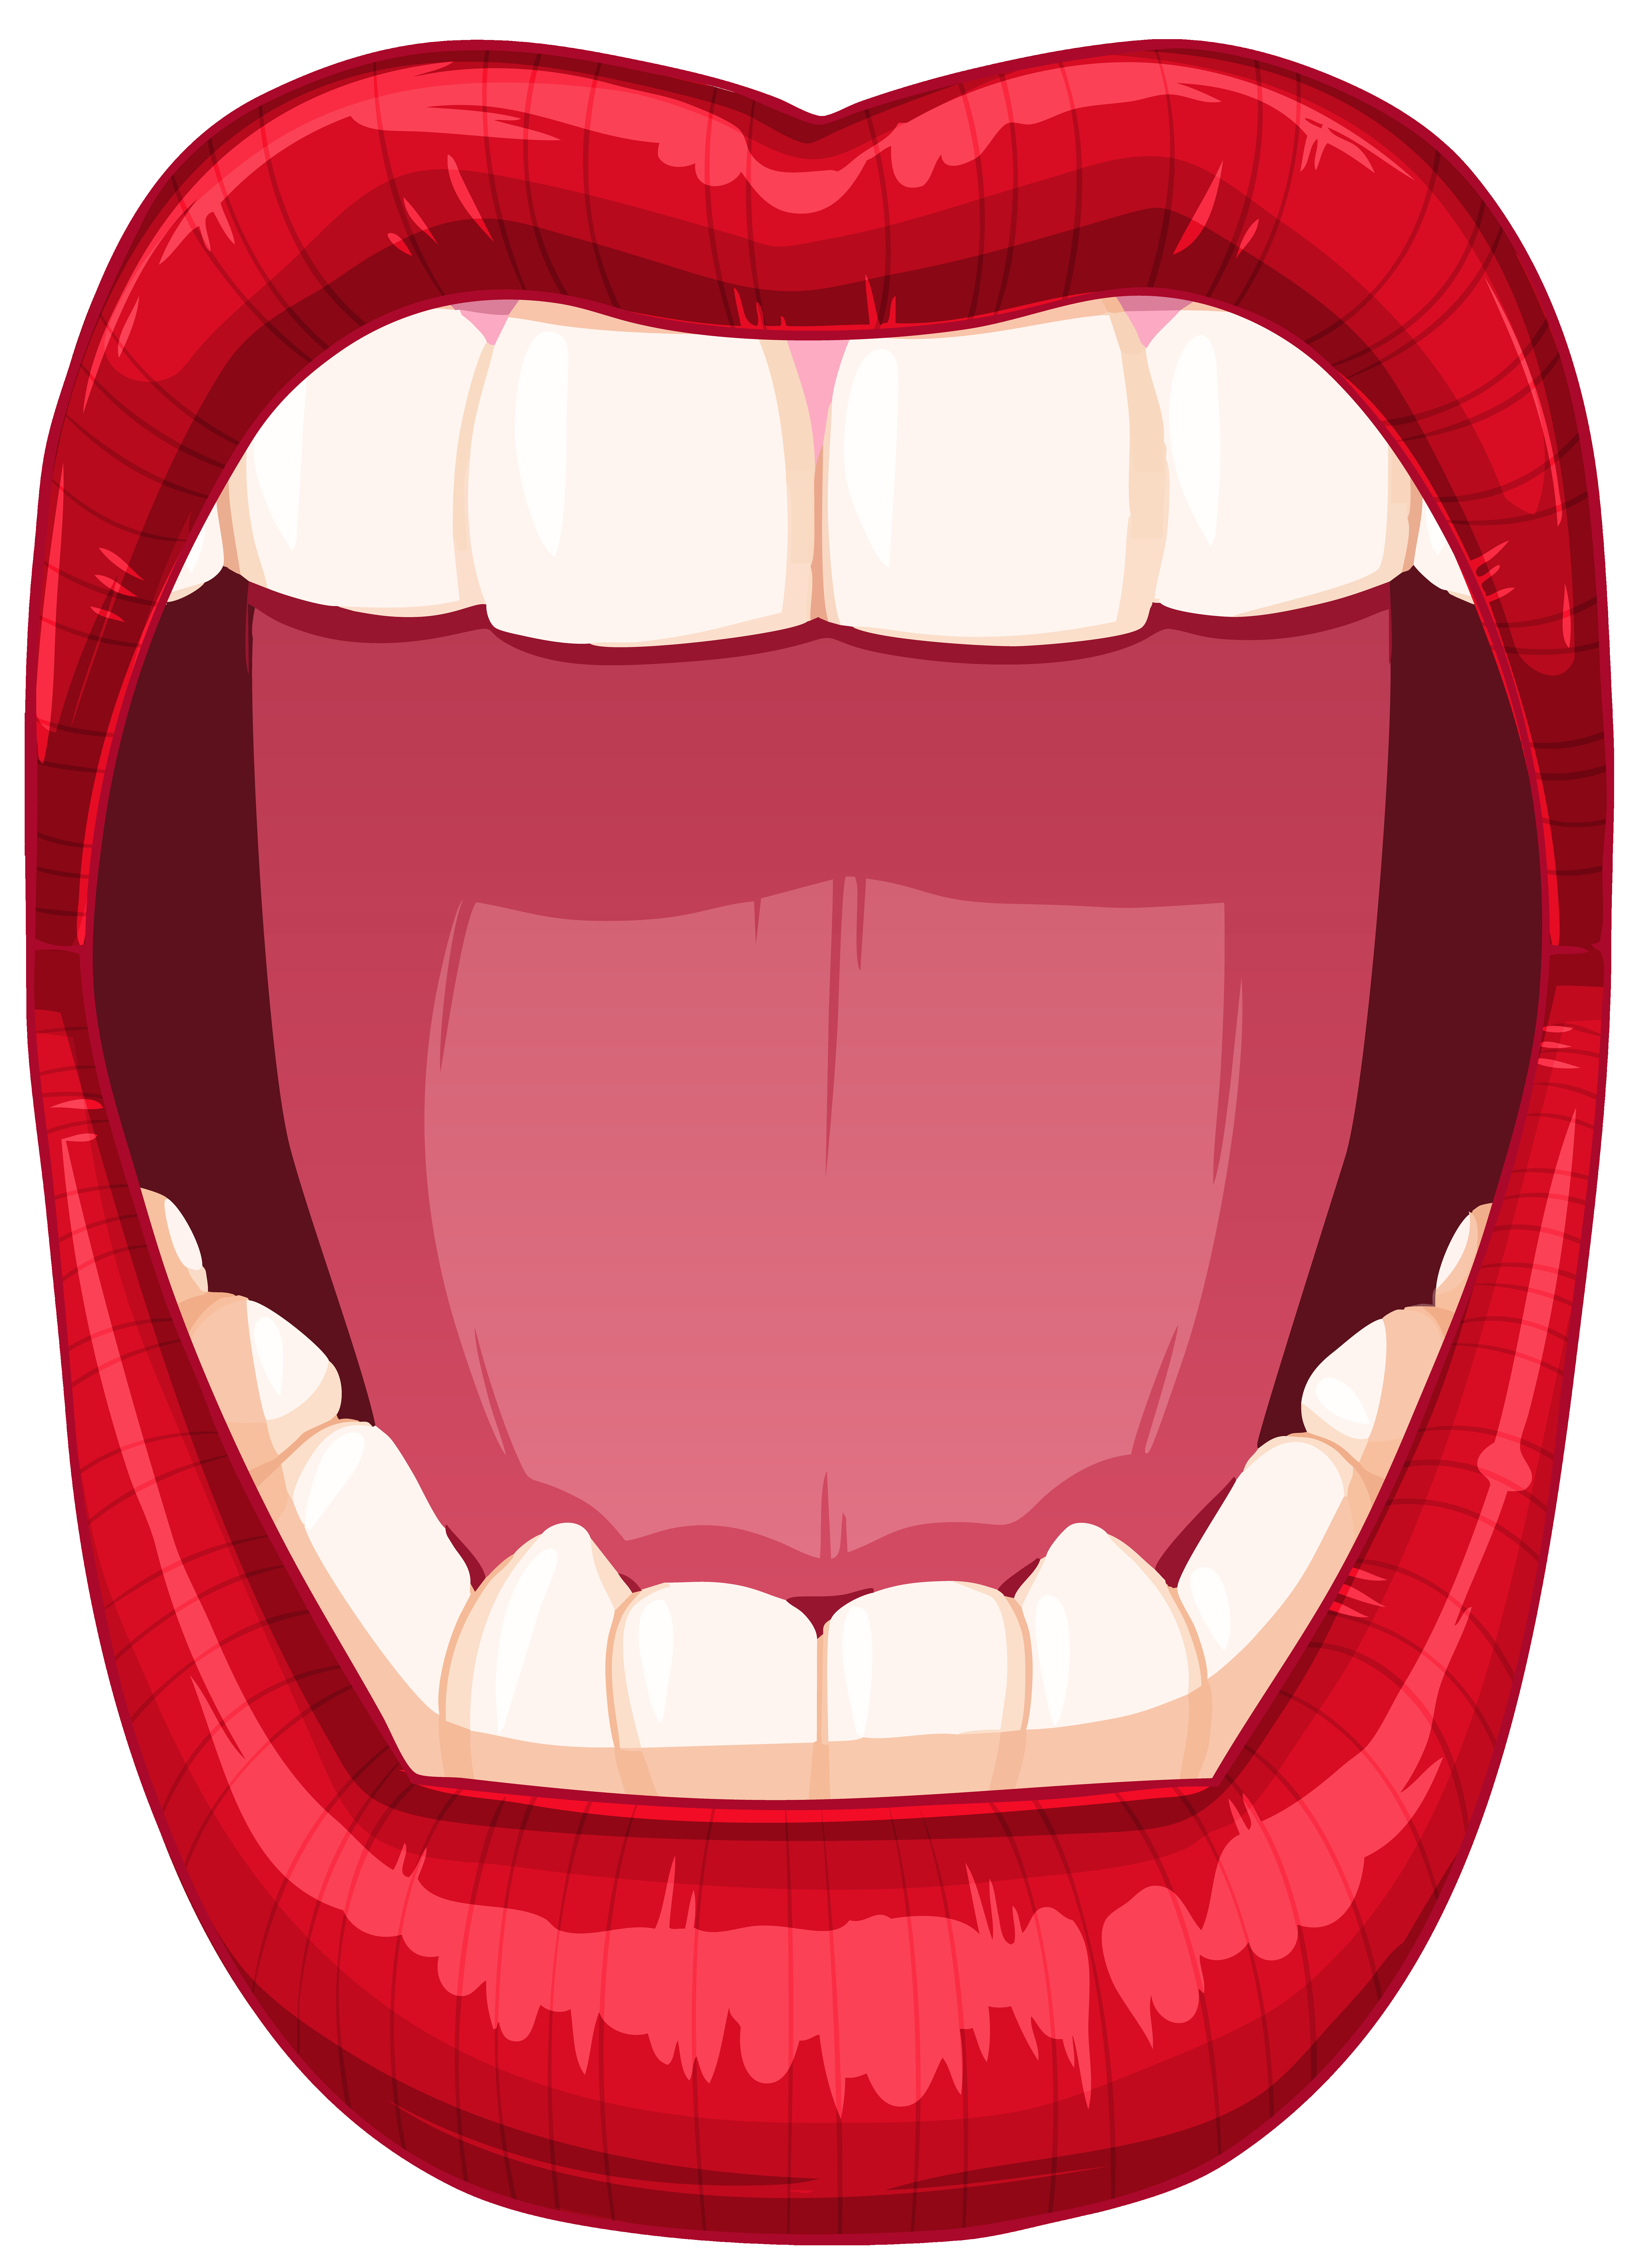 open mouth clipart at getdrawings com free for personal use open rh getdrawings com fish open mouth clipart open mouth clipart black and white